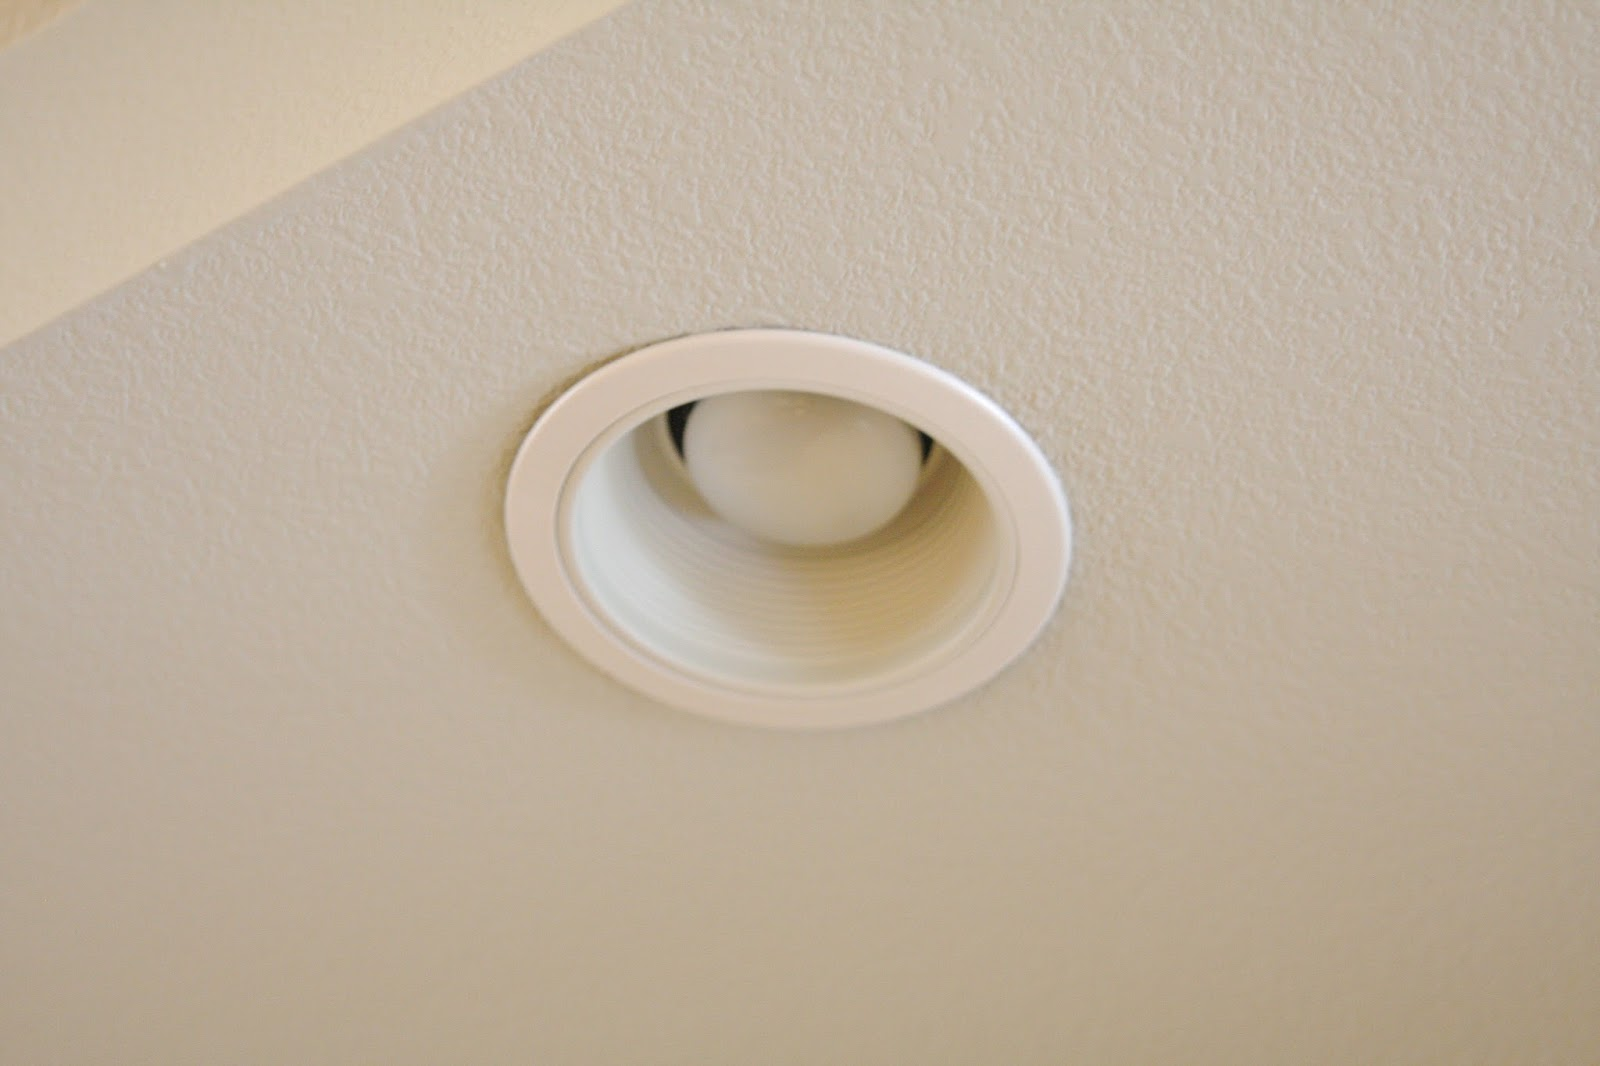 Easy DIY: How To Install LED Trim Lighting